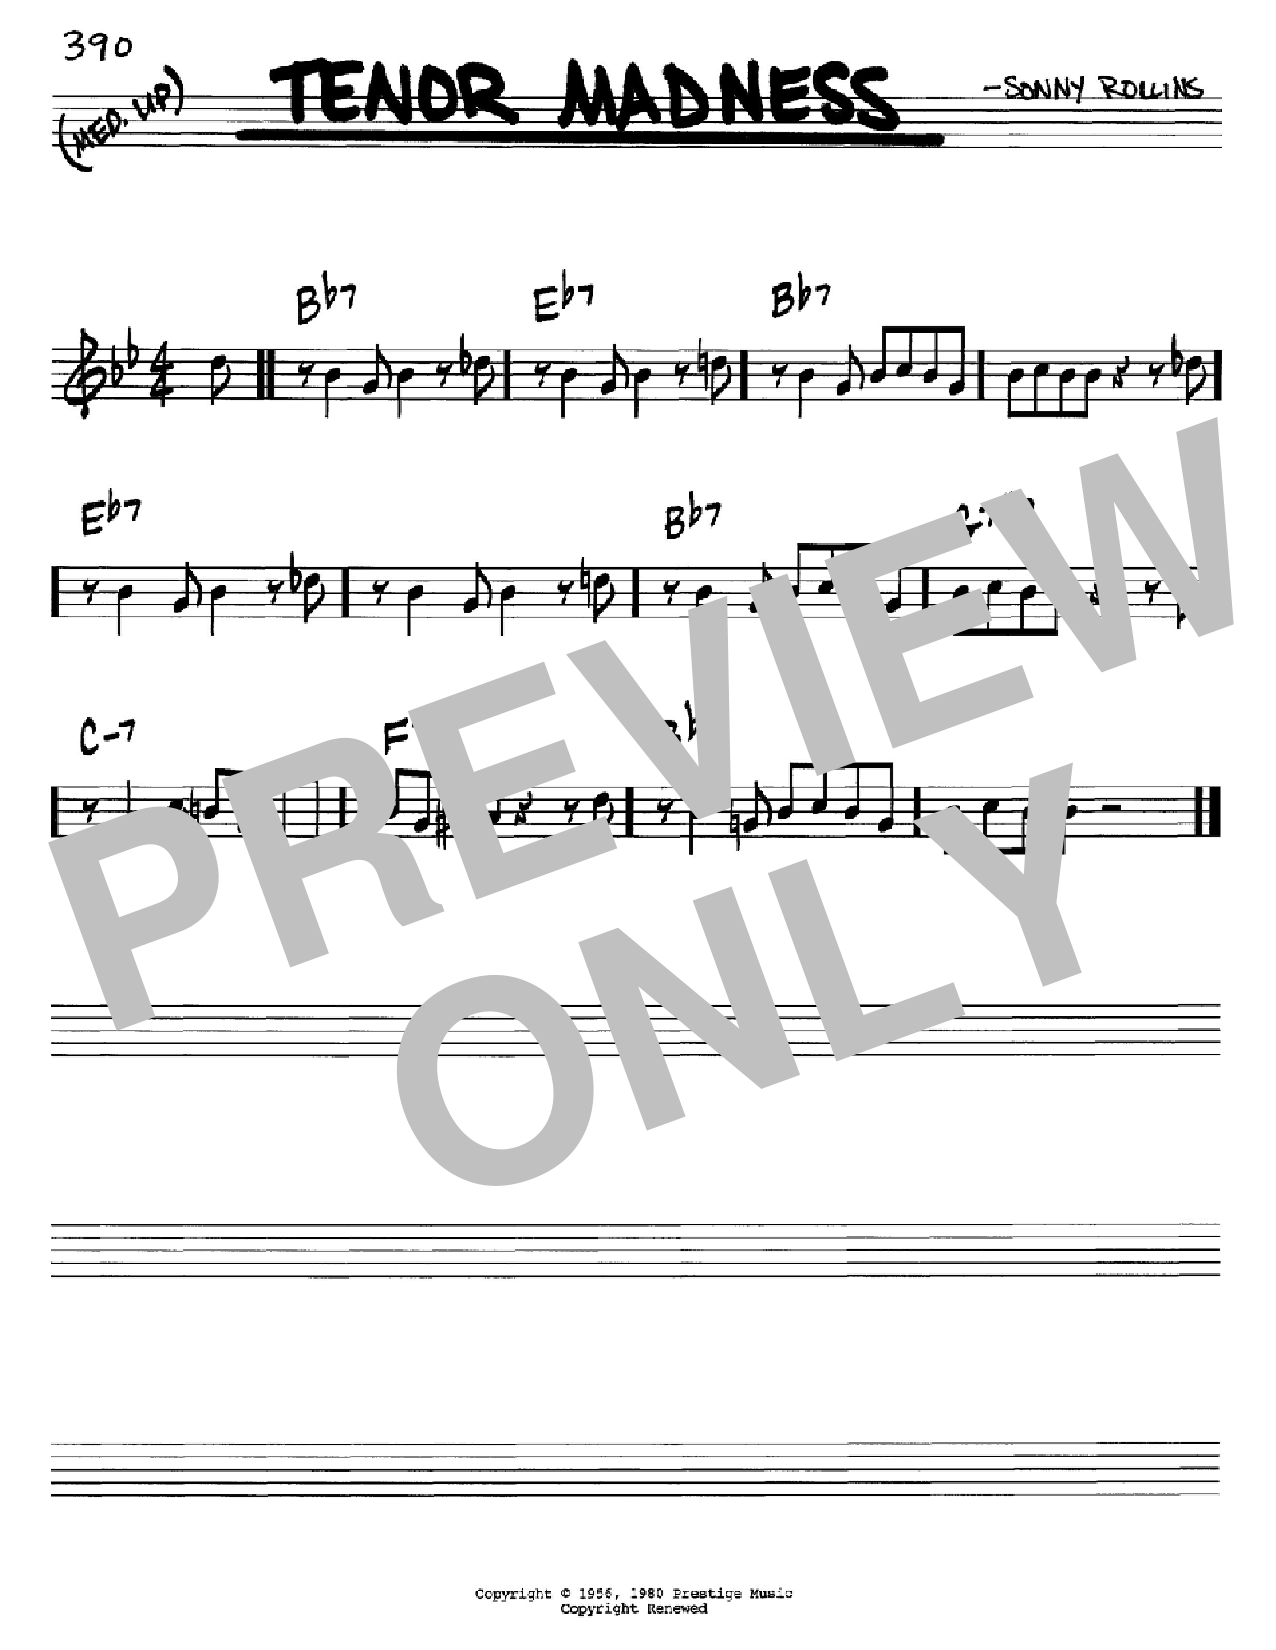 Tenor Madness Sheet Music